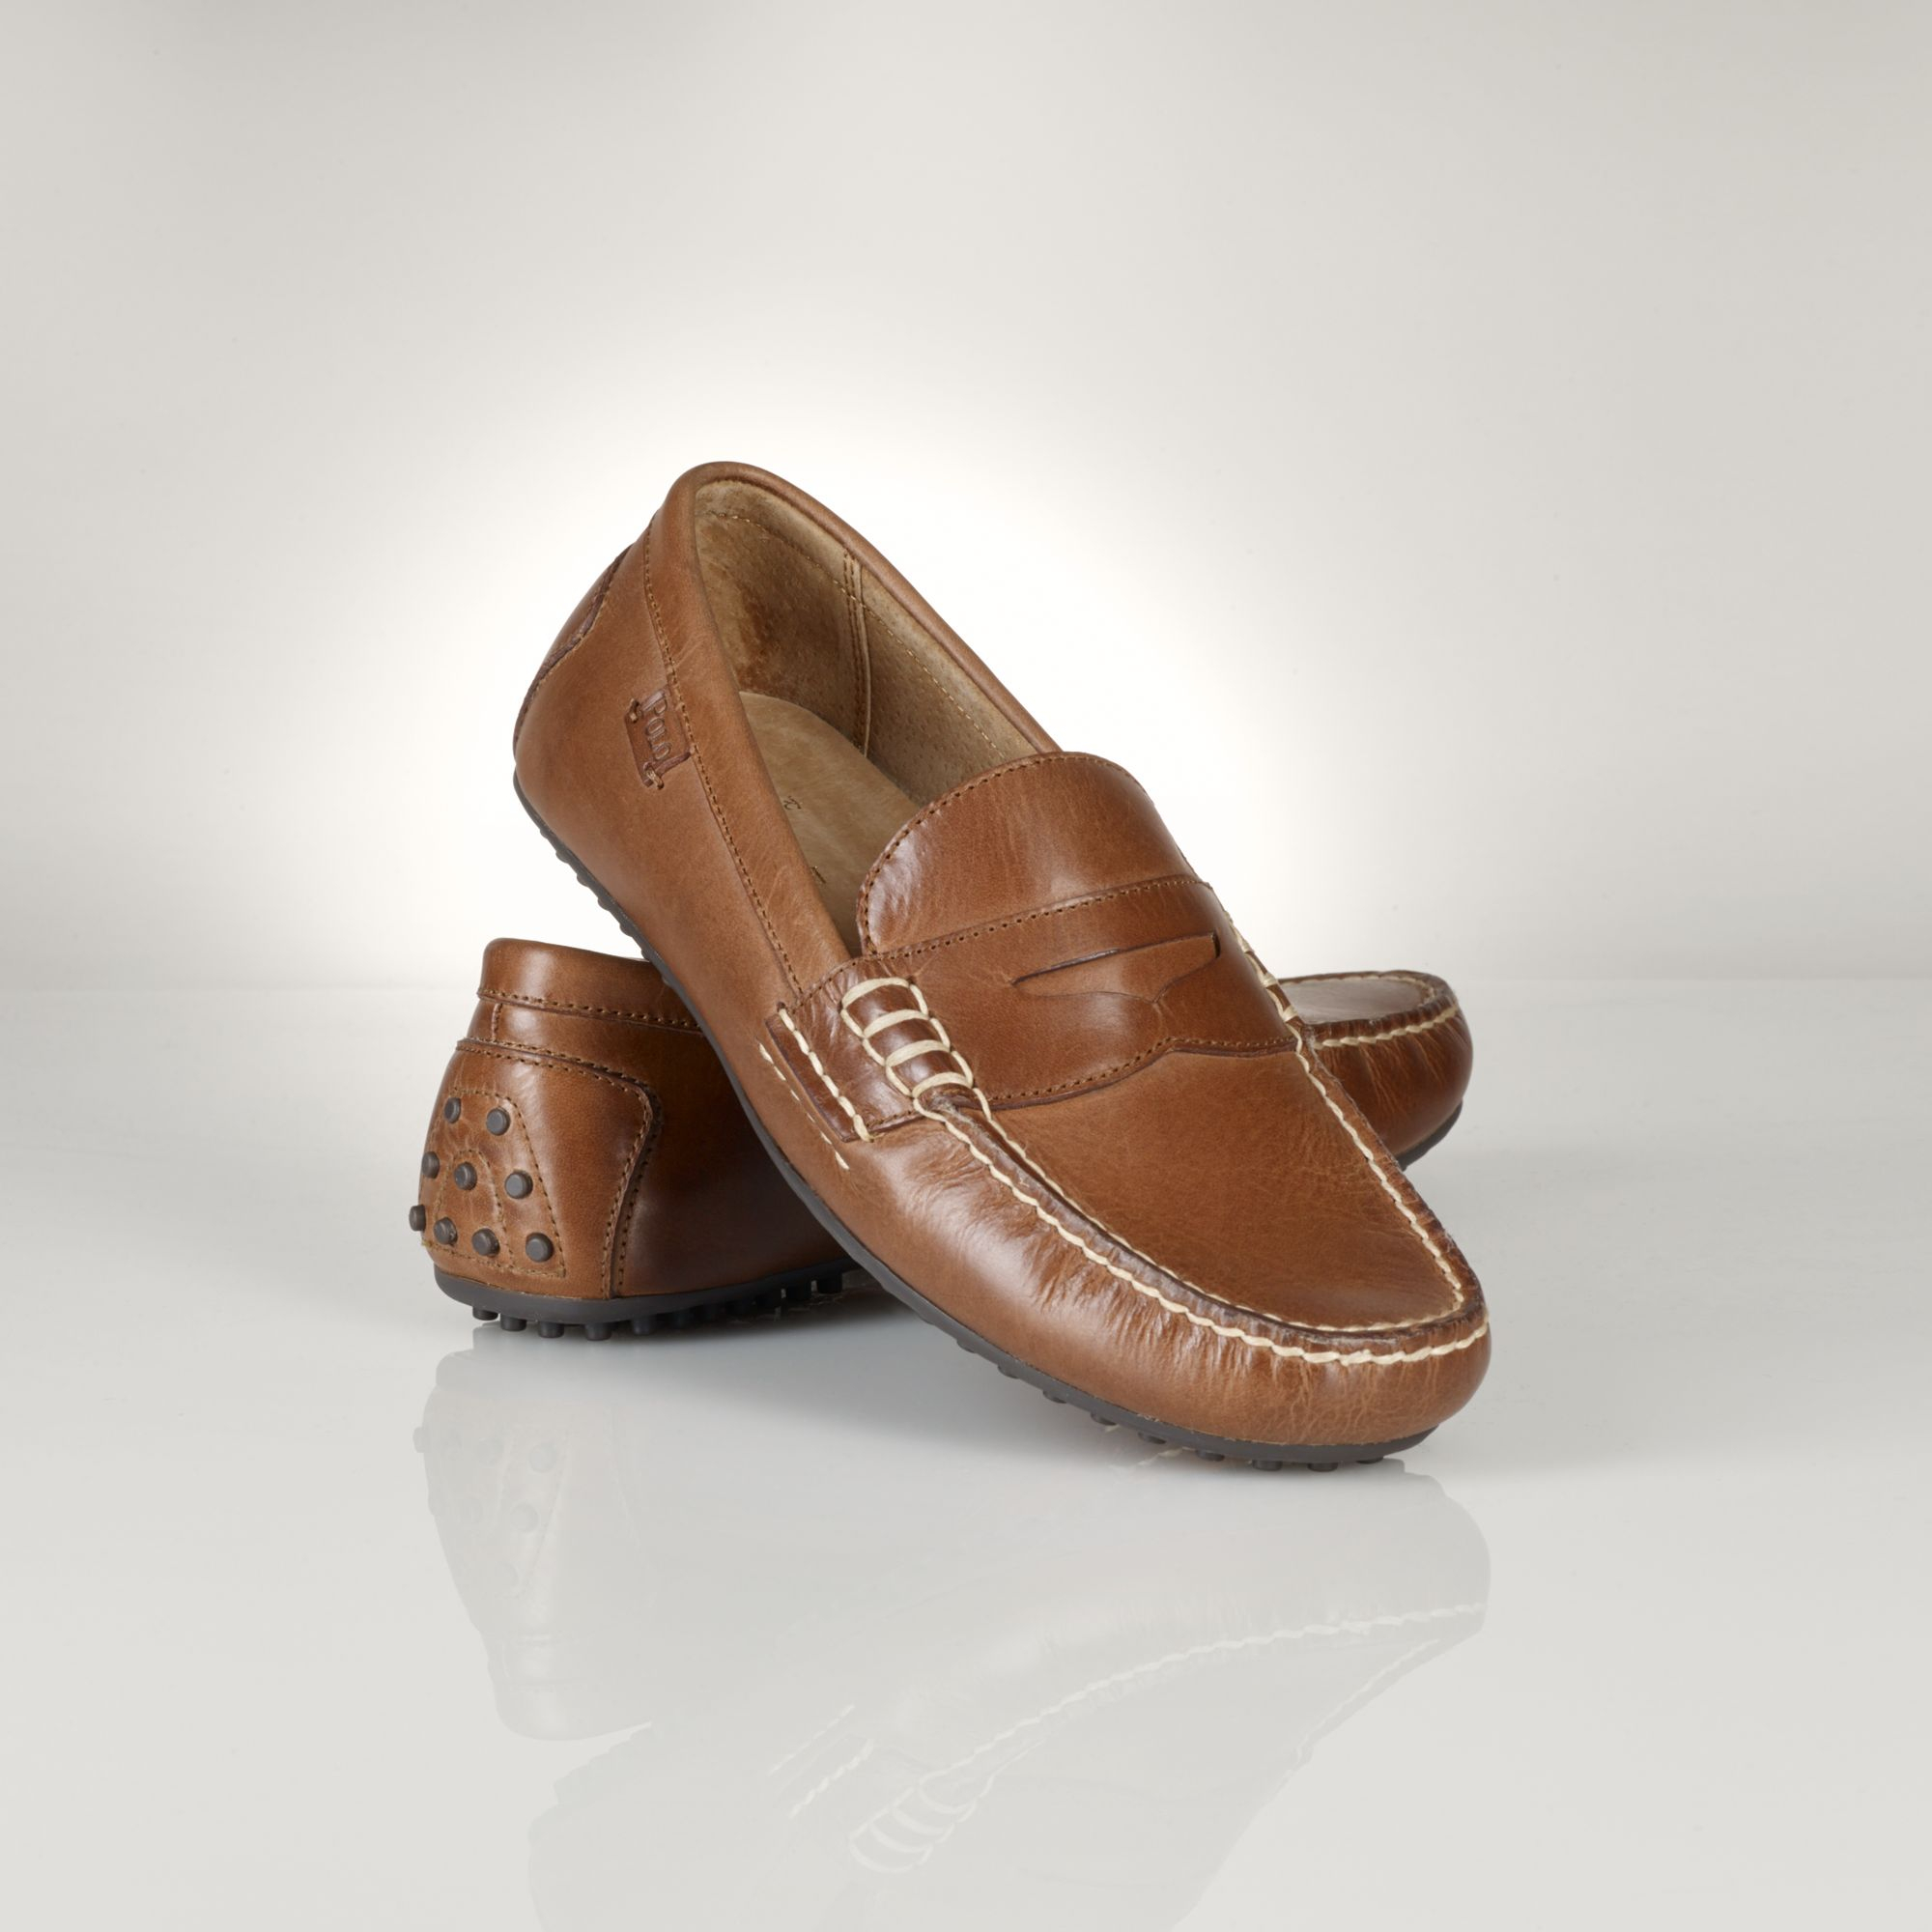 dde81b29724 Polo Ralph Lauren Leather Wes Penny Loafer in Brown for Men - Lyst